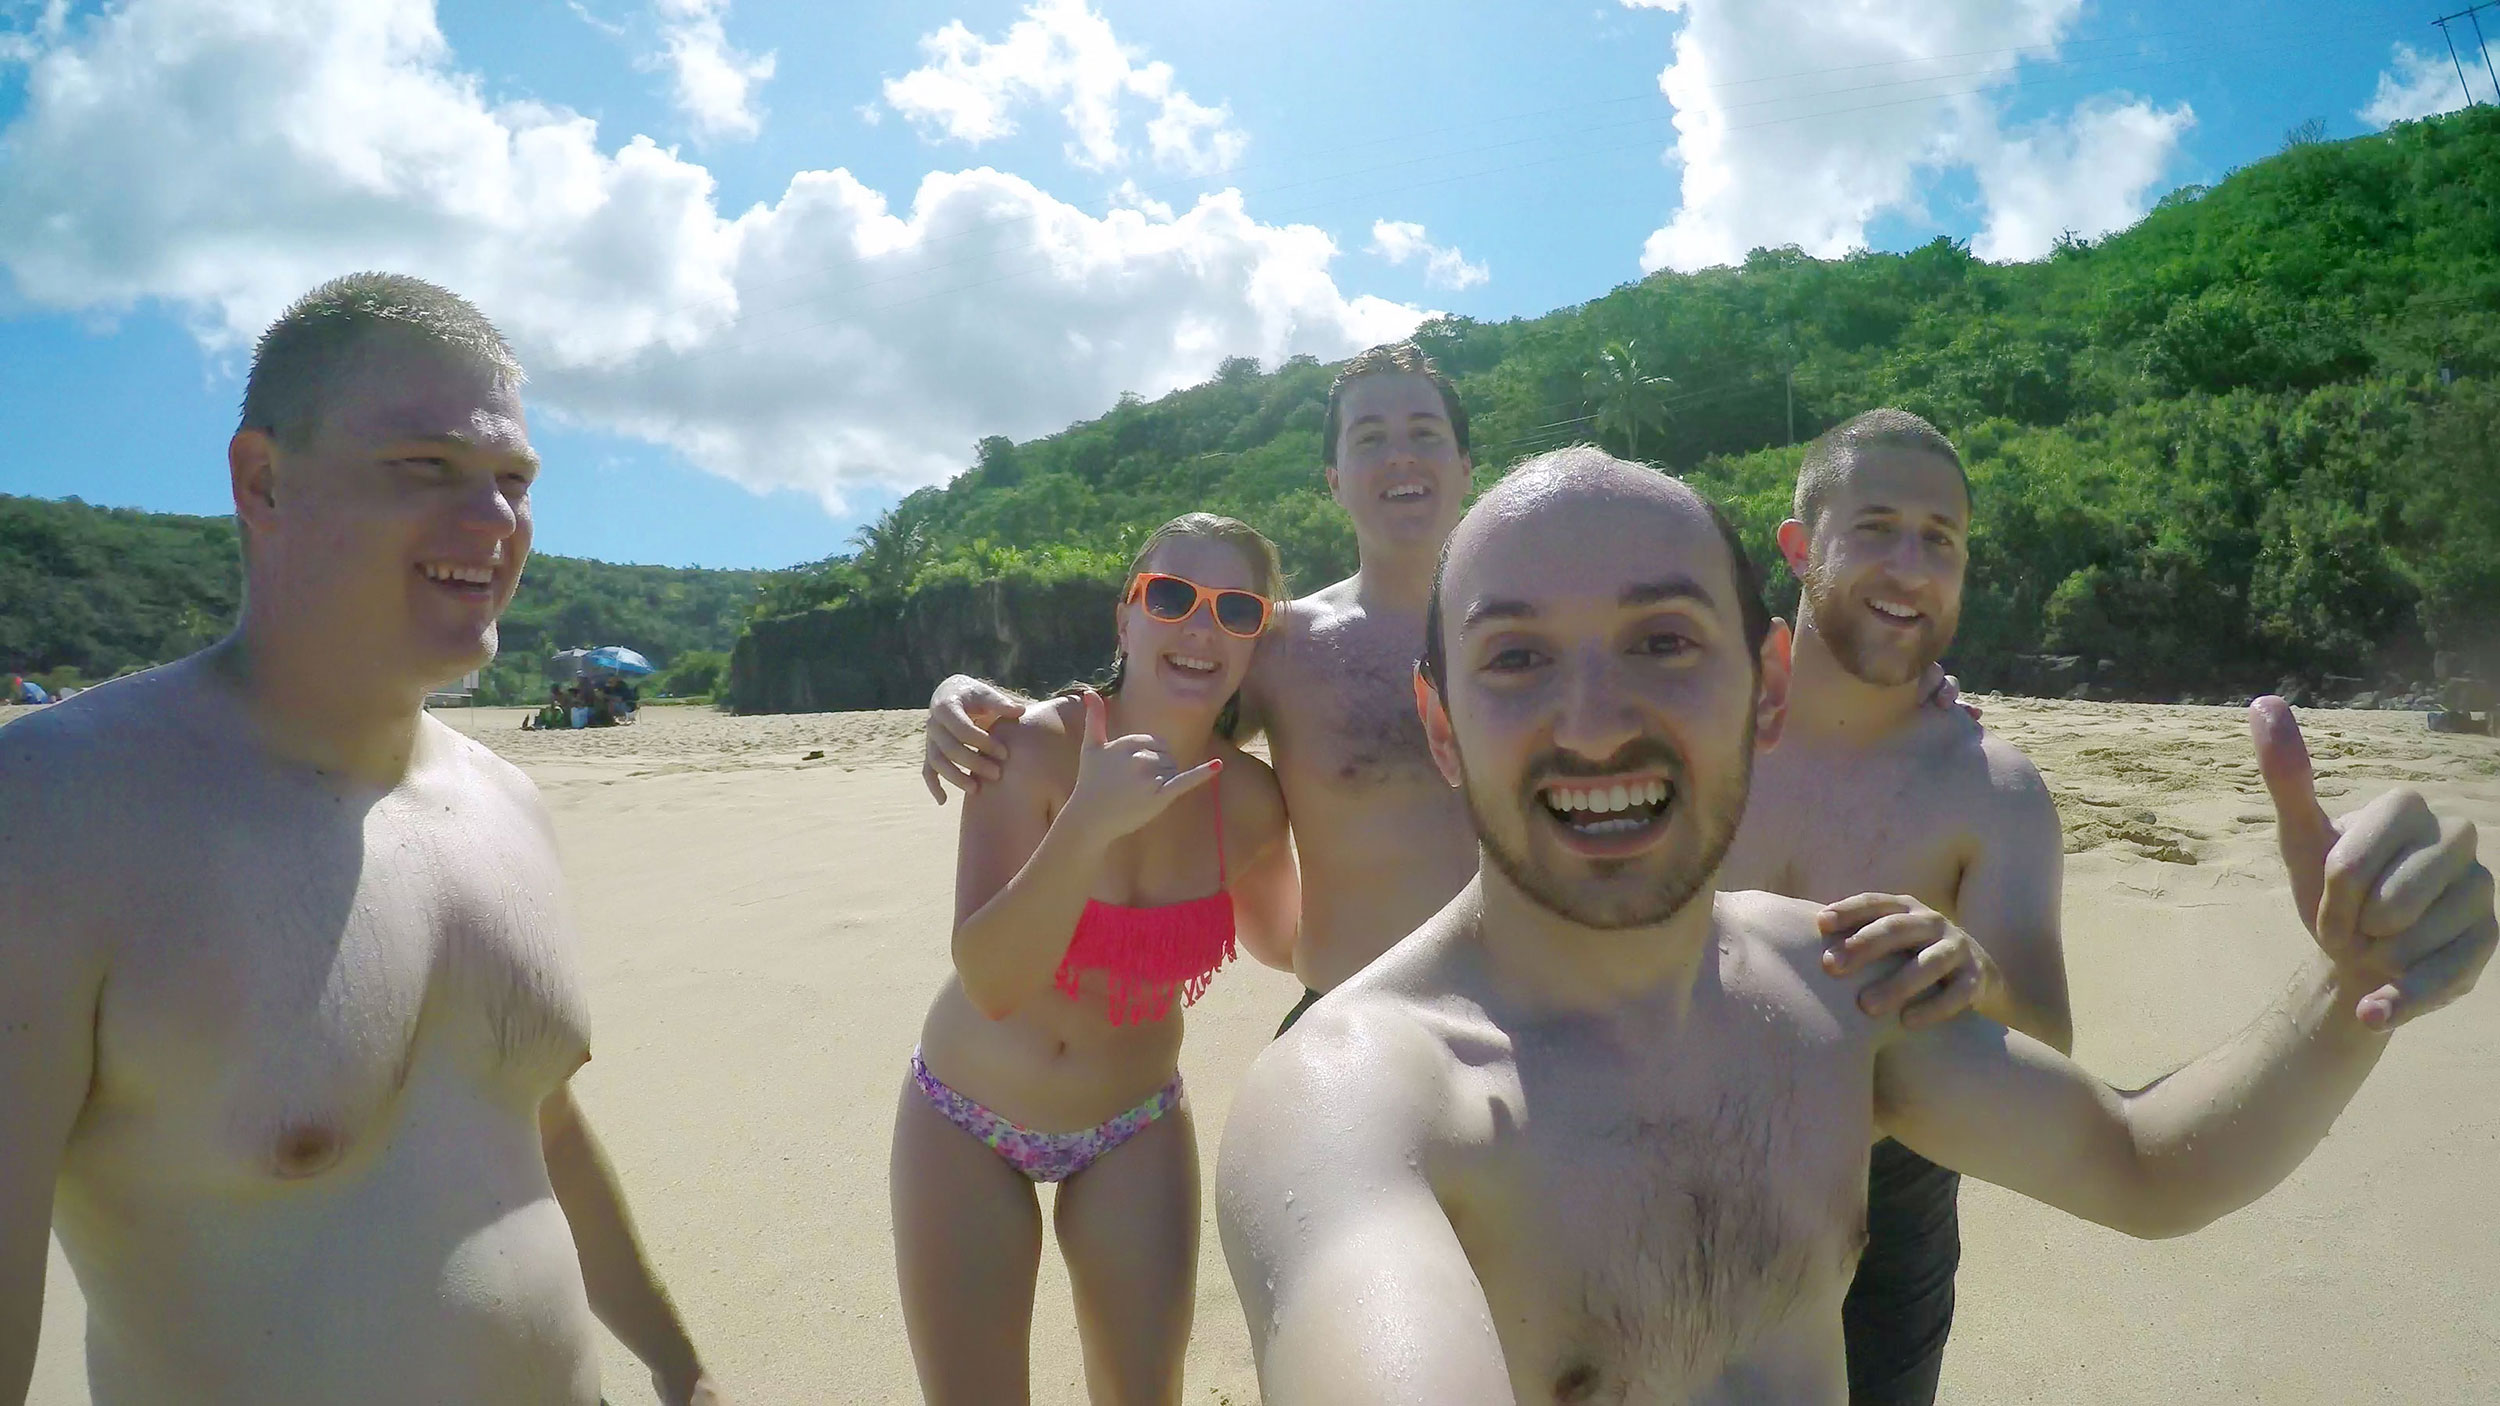 The-Gang-Does-Hawaii-02.jpg